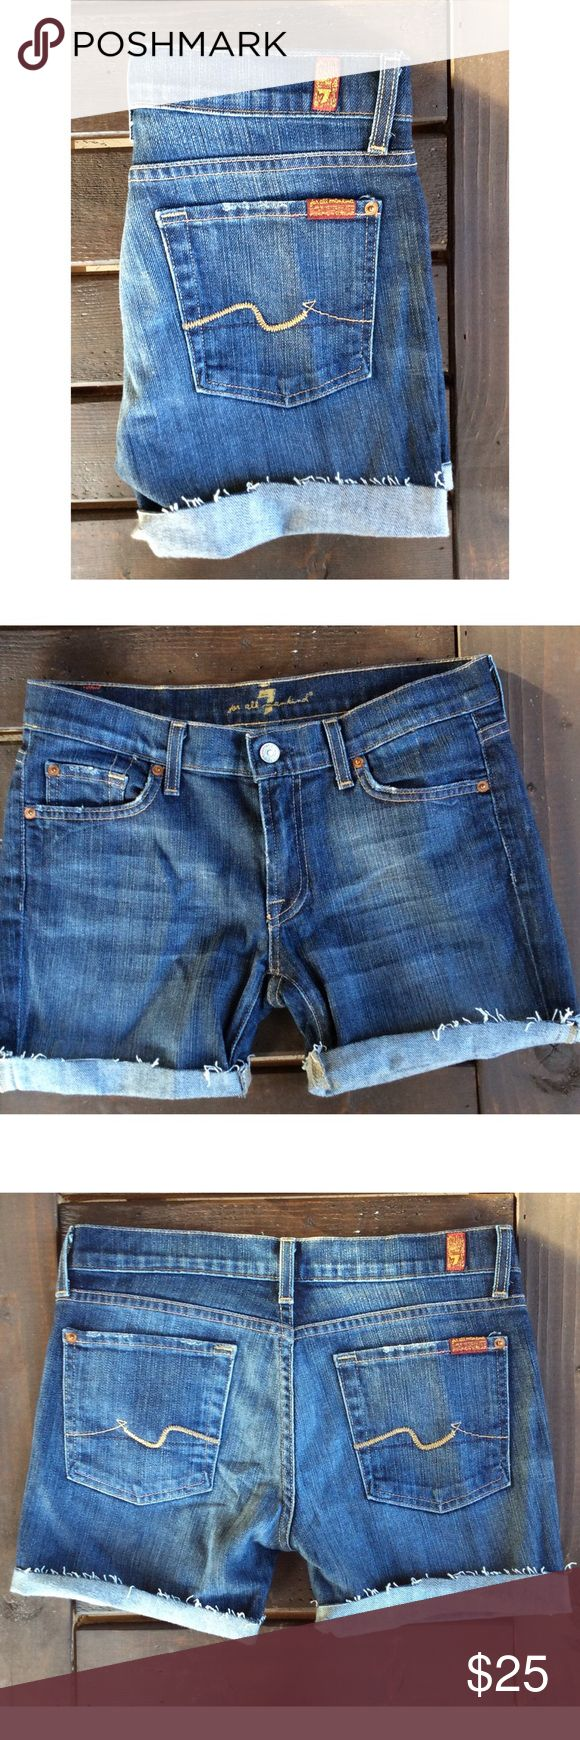 Cutoff Jean Shorts Size 28 Cutoff Jean Shorts Size 28, hem is not stitched 7 For All Mankind Shorts Jean Shorts